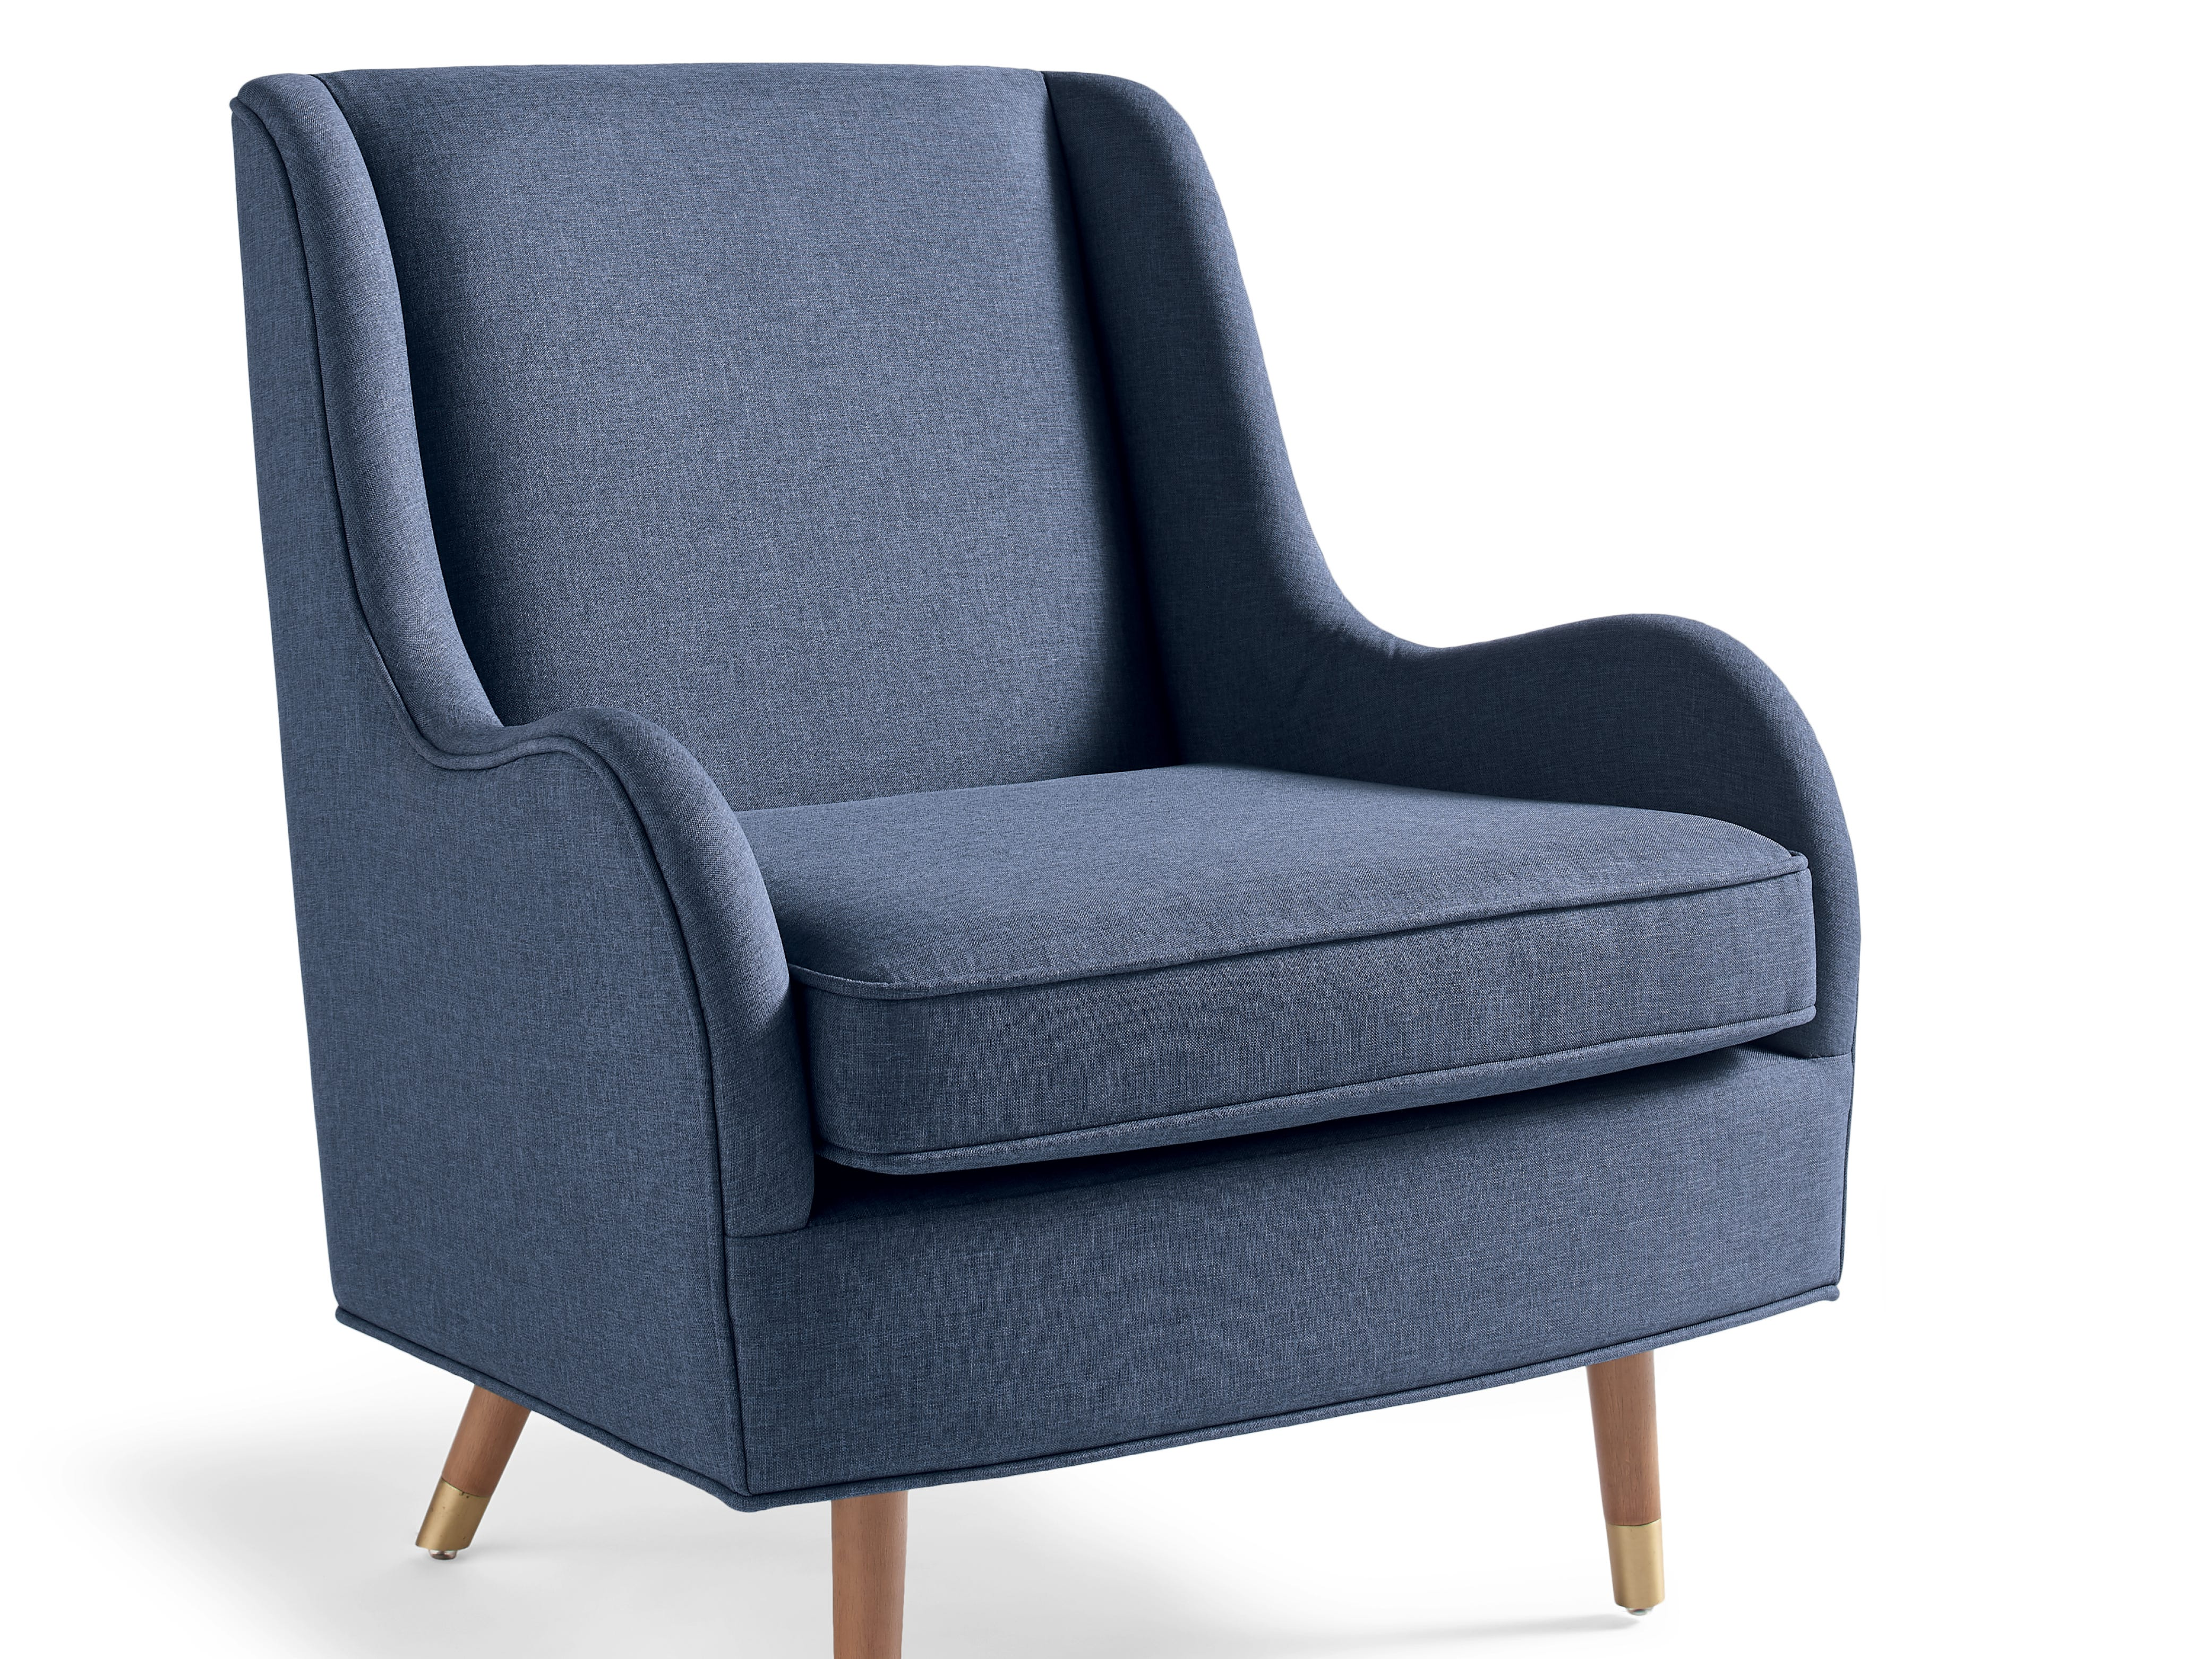 Will Taylor's new collection with Grandin Road includes the Coften Chair, upholstered in a dark grayish blue fabric.